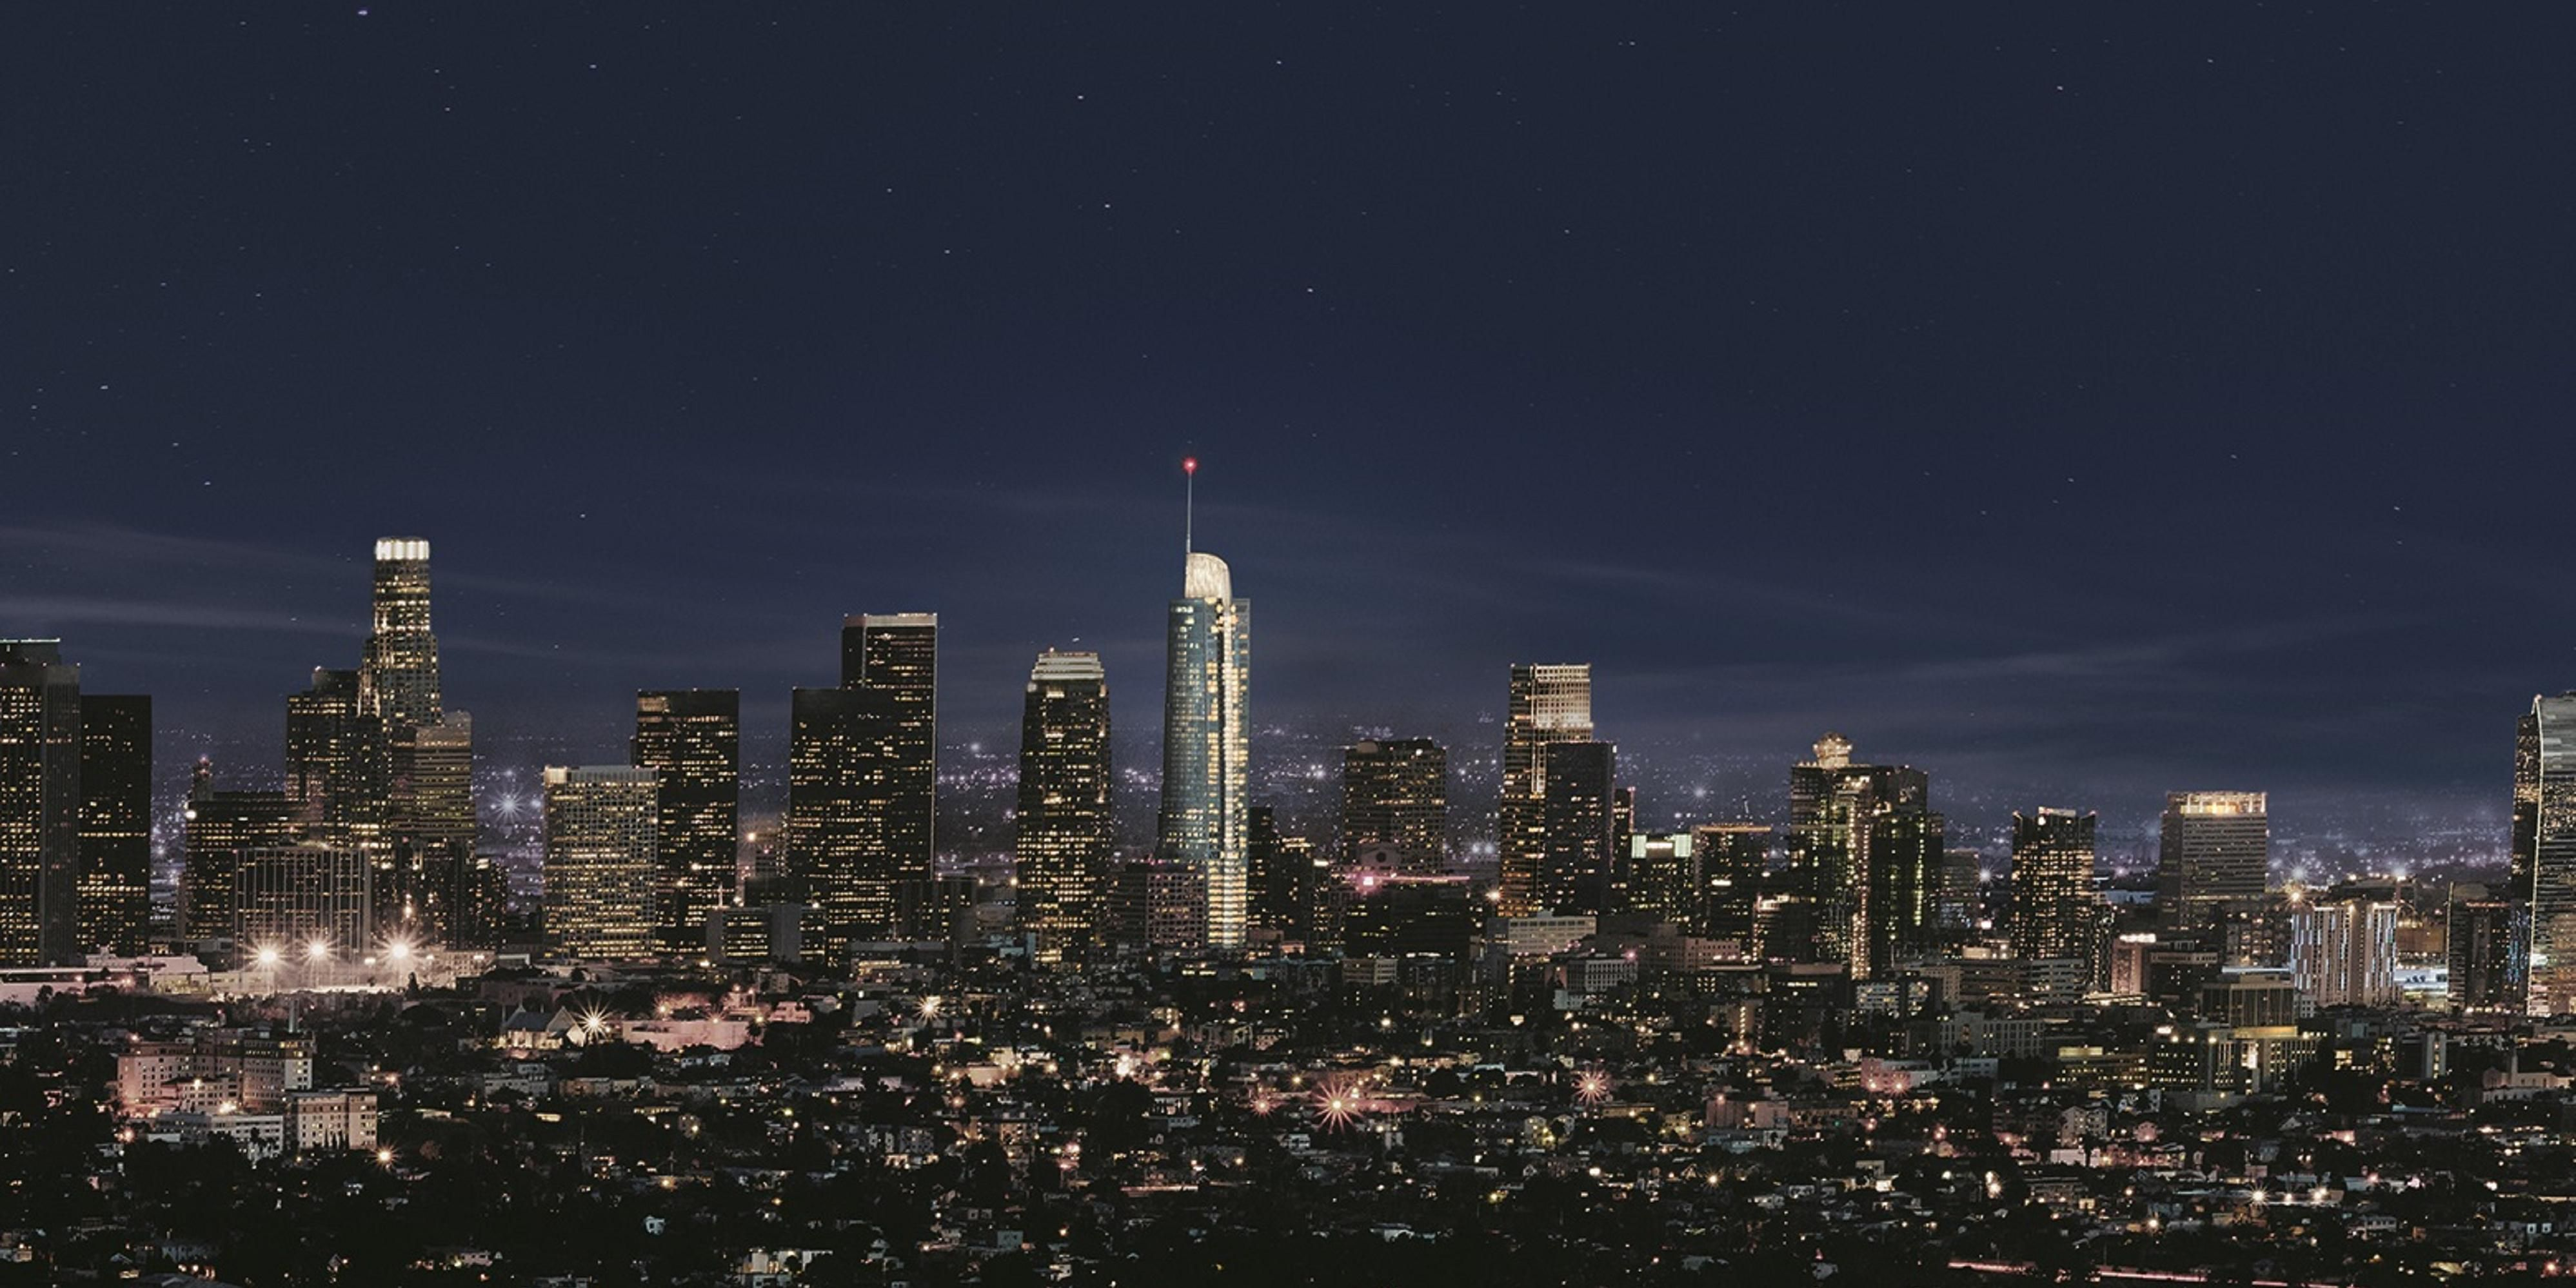 Places to do photoshoots in los angeles Top 10 Most Popular Los Angeles Outdoor Locations on Instagram